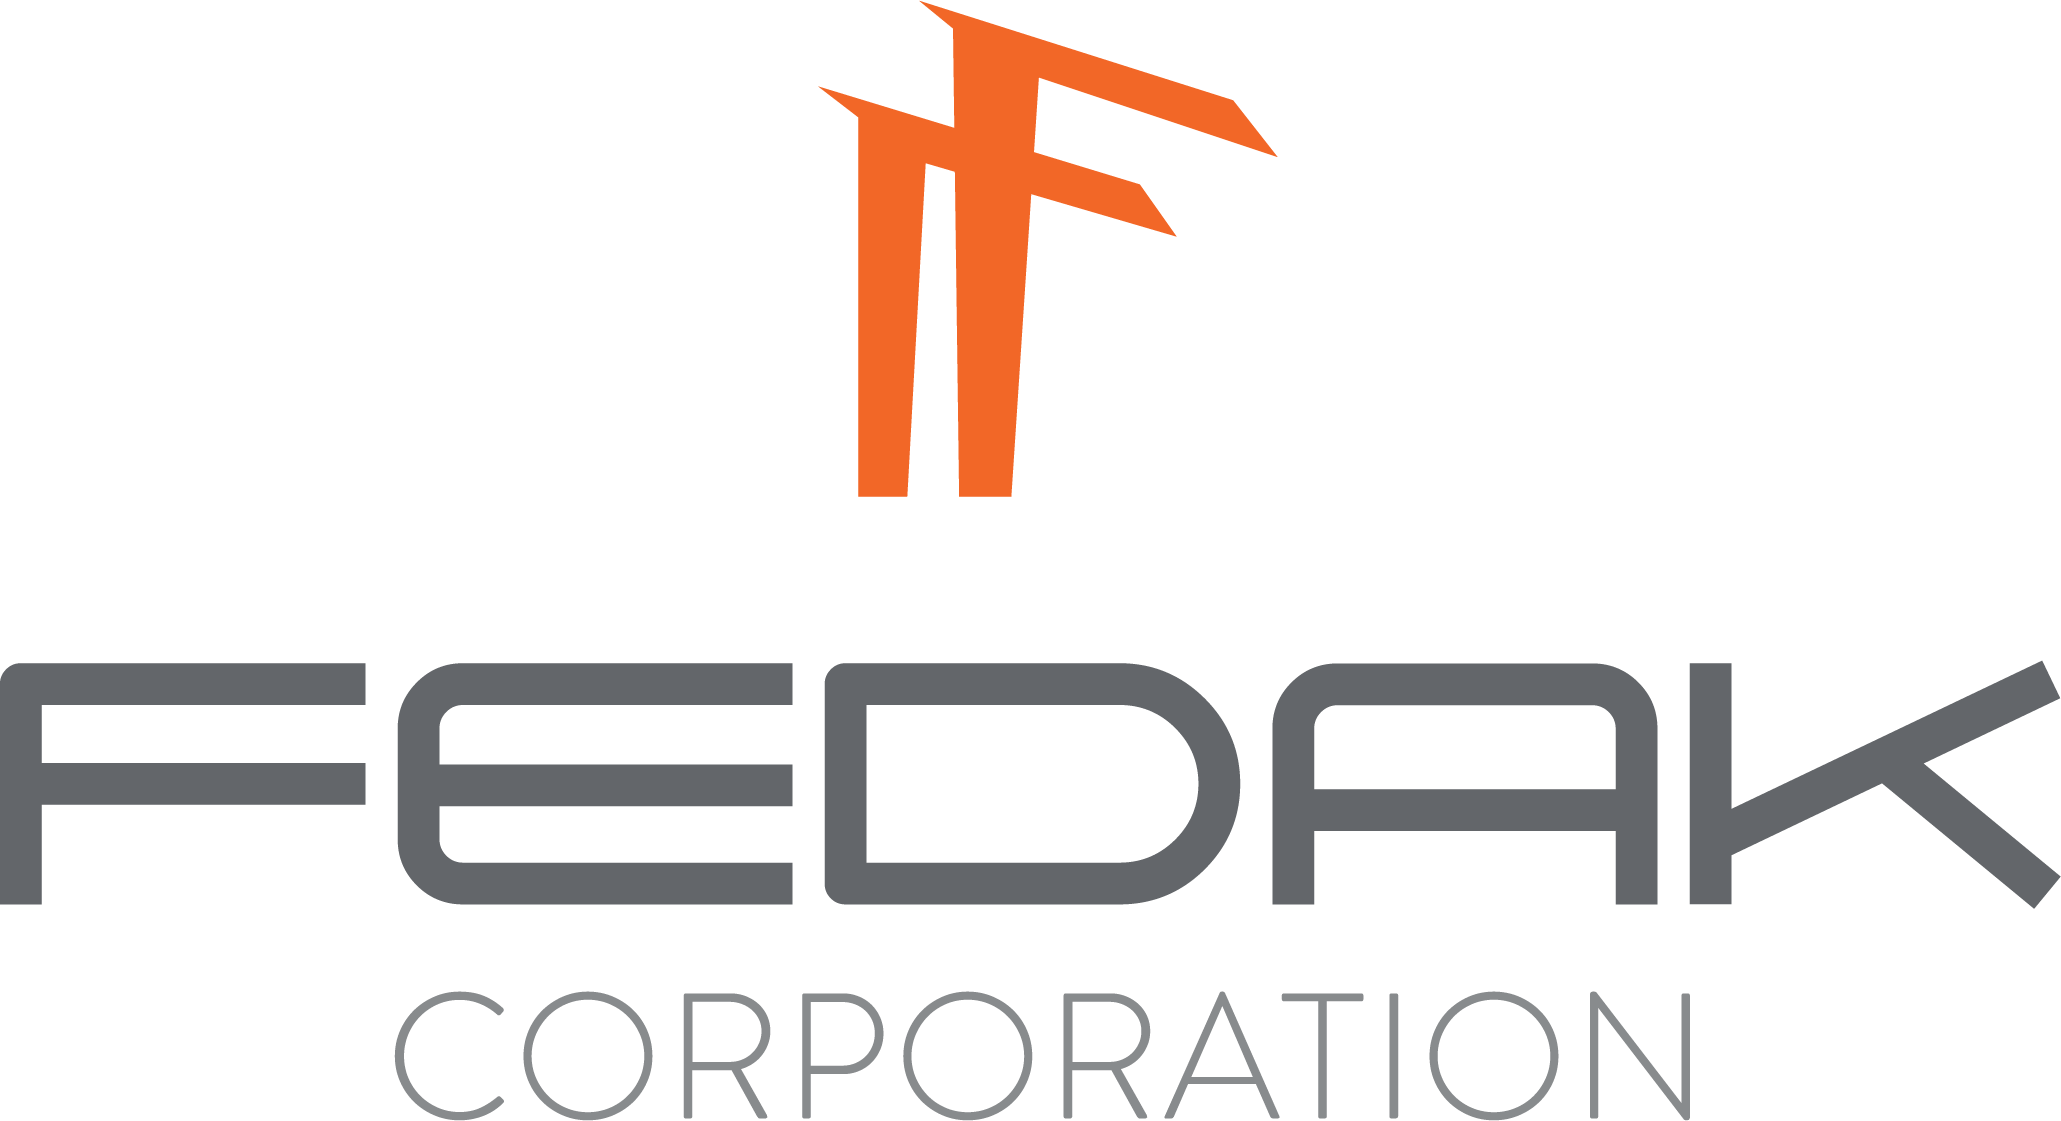 Fedak Corporation